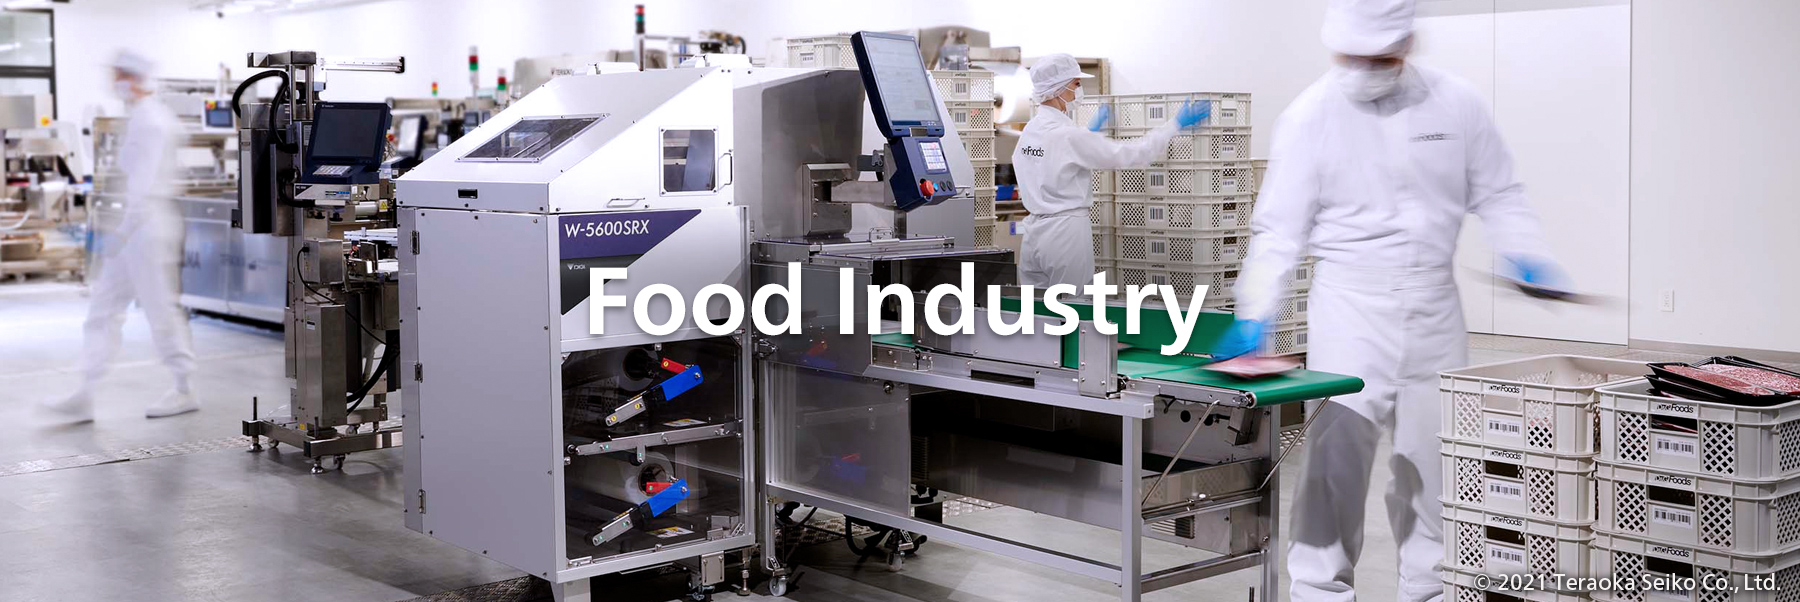 DIGI provides leading-edge solutions to the food industry with a wide range  of products and the latest technology.